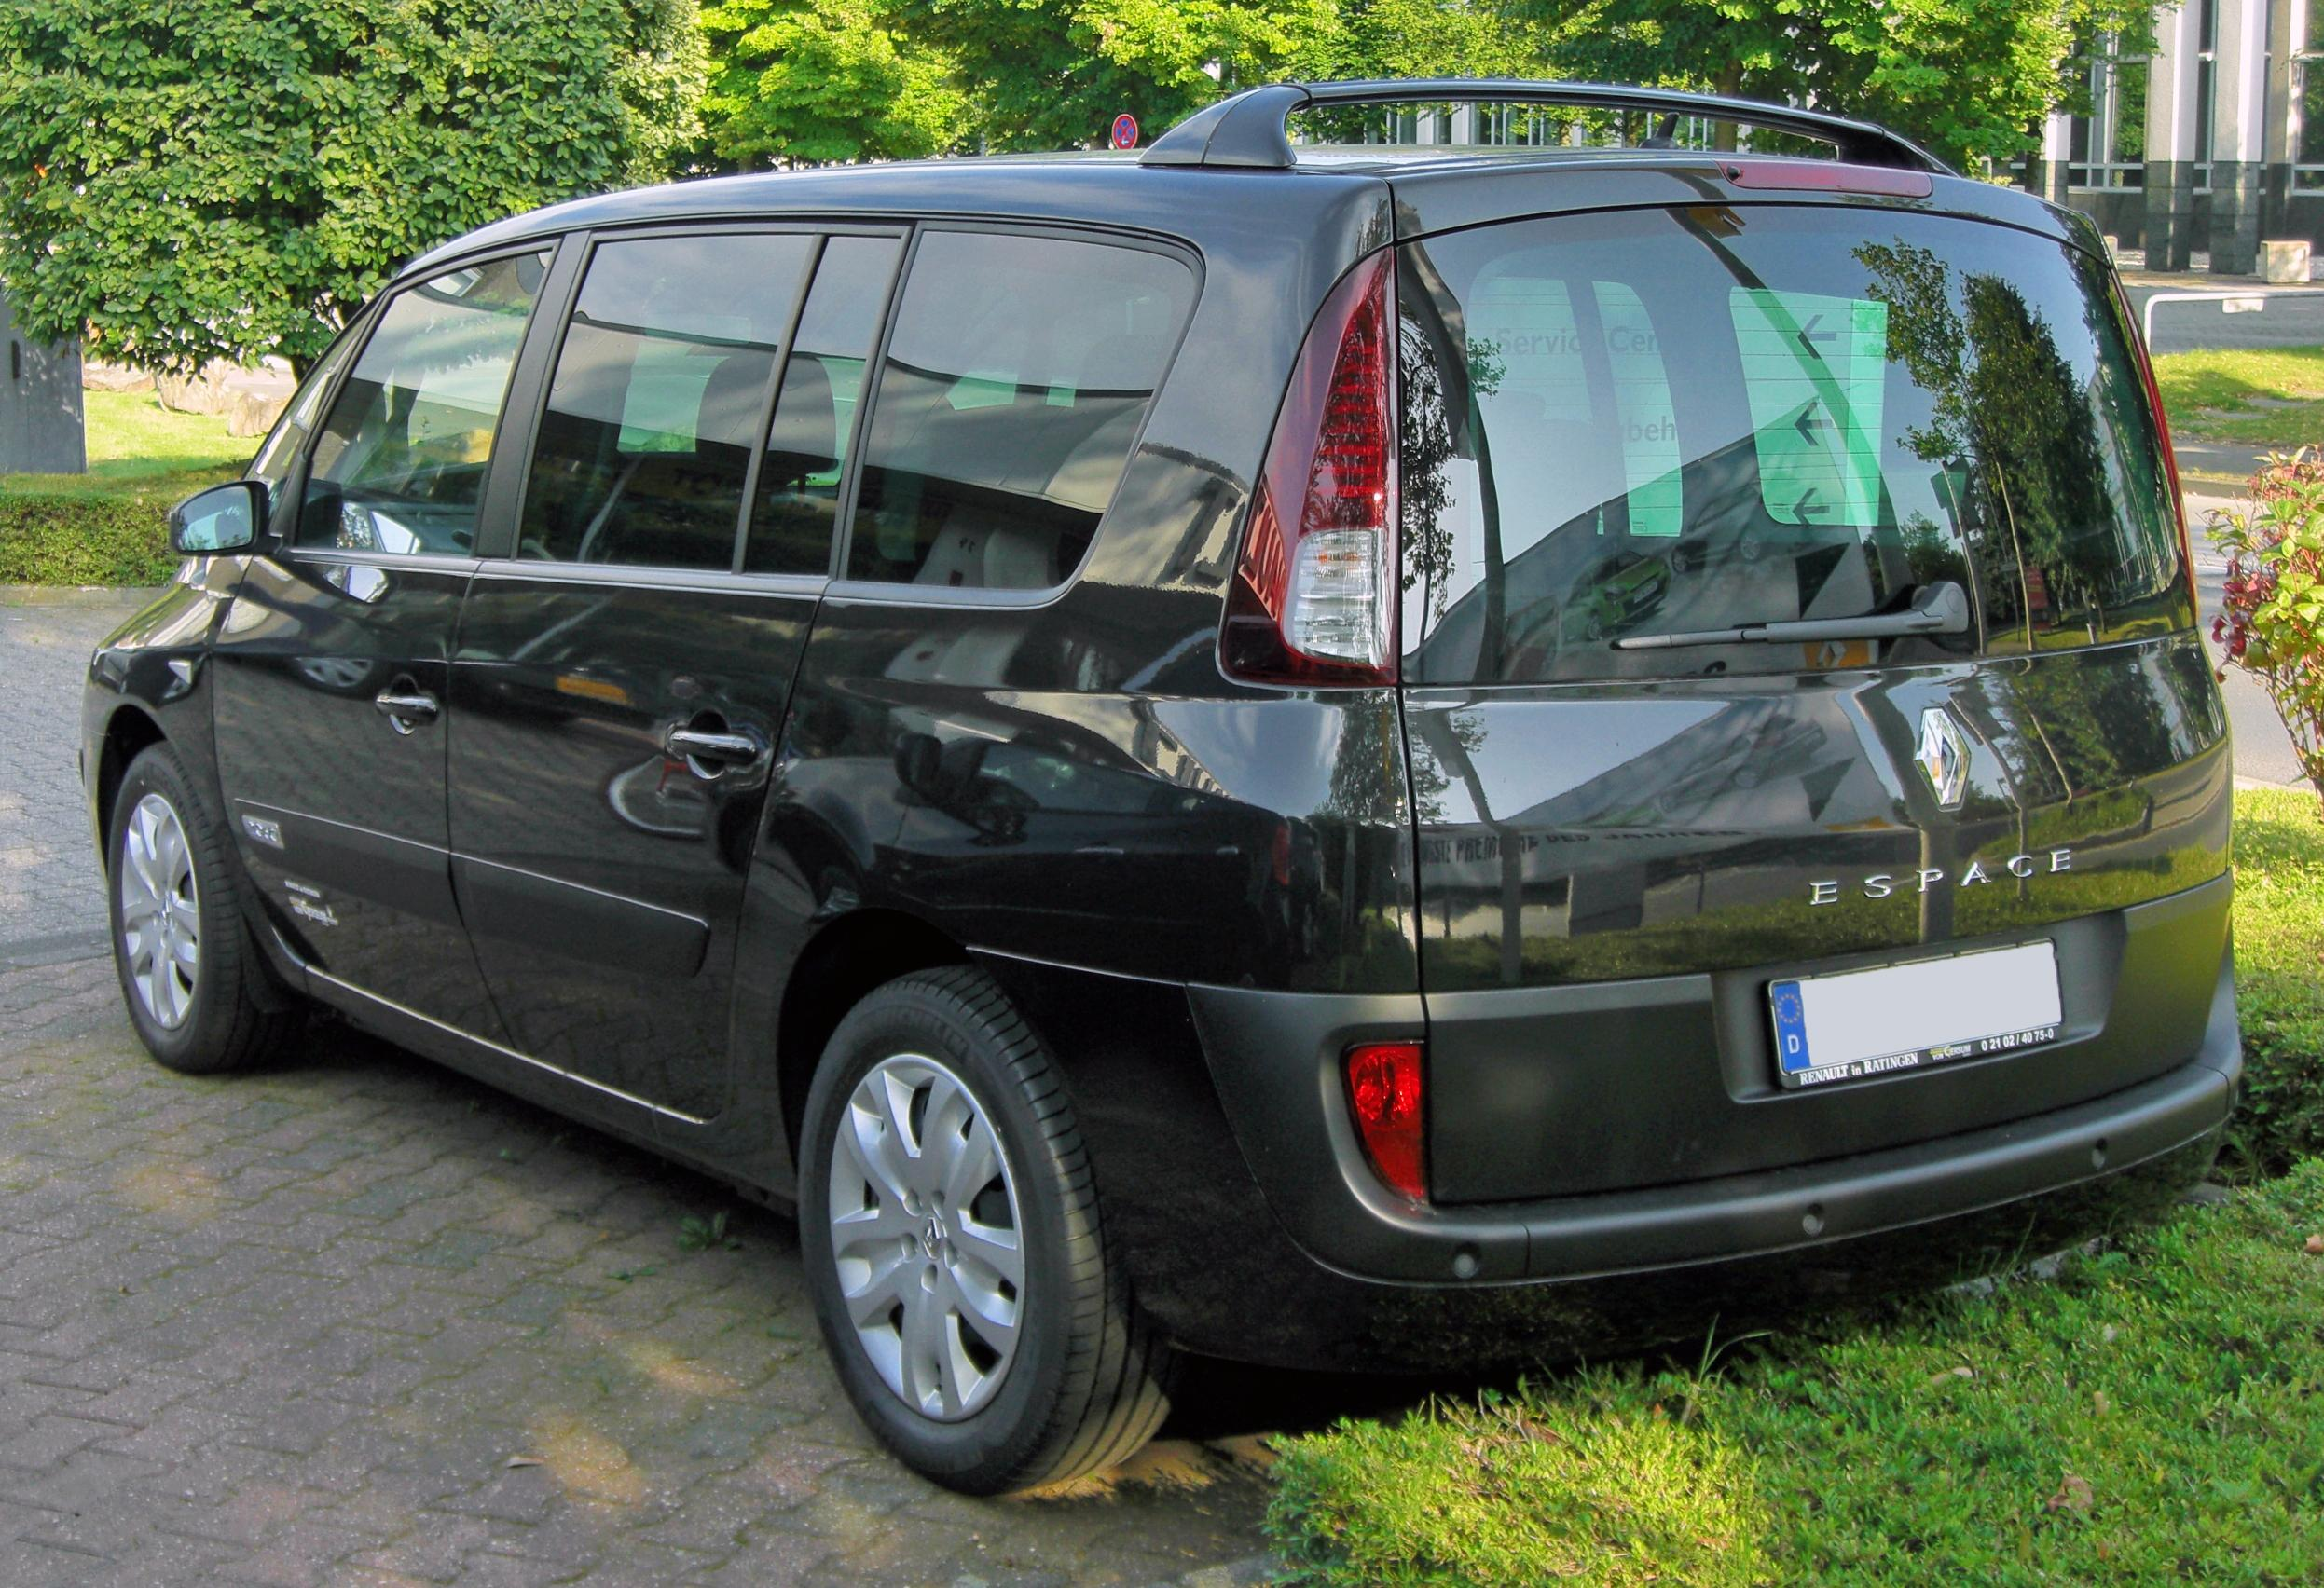 file renault espace iv facelift 20090801 rear jpg wikimedia commons. Black Bedroom Furniture Sets. Home Design Ideas